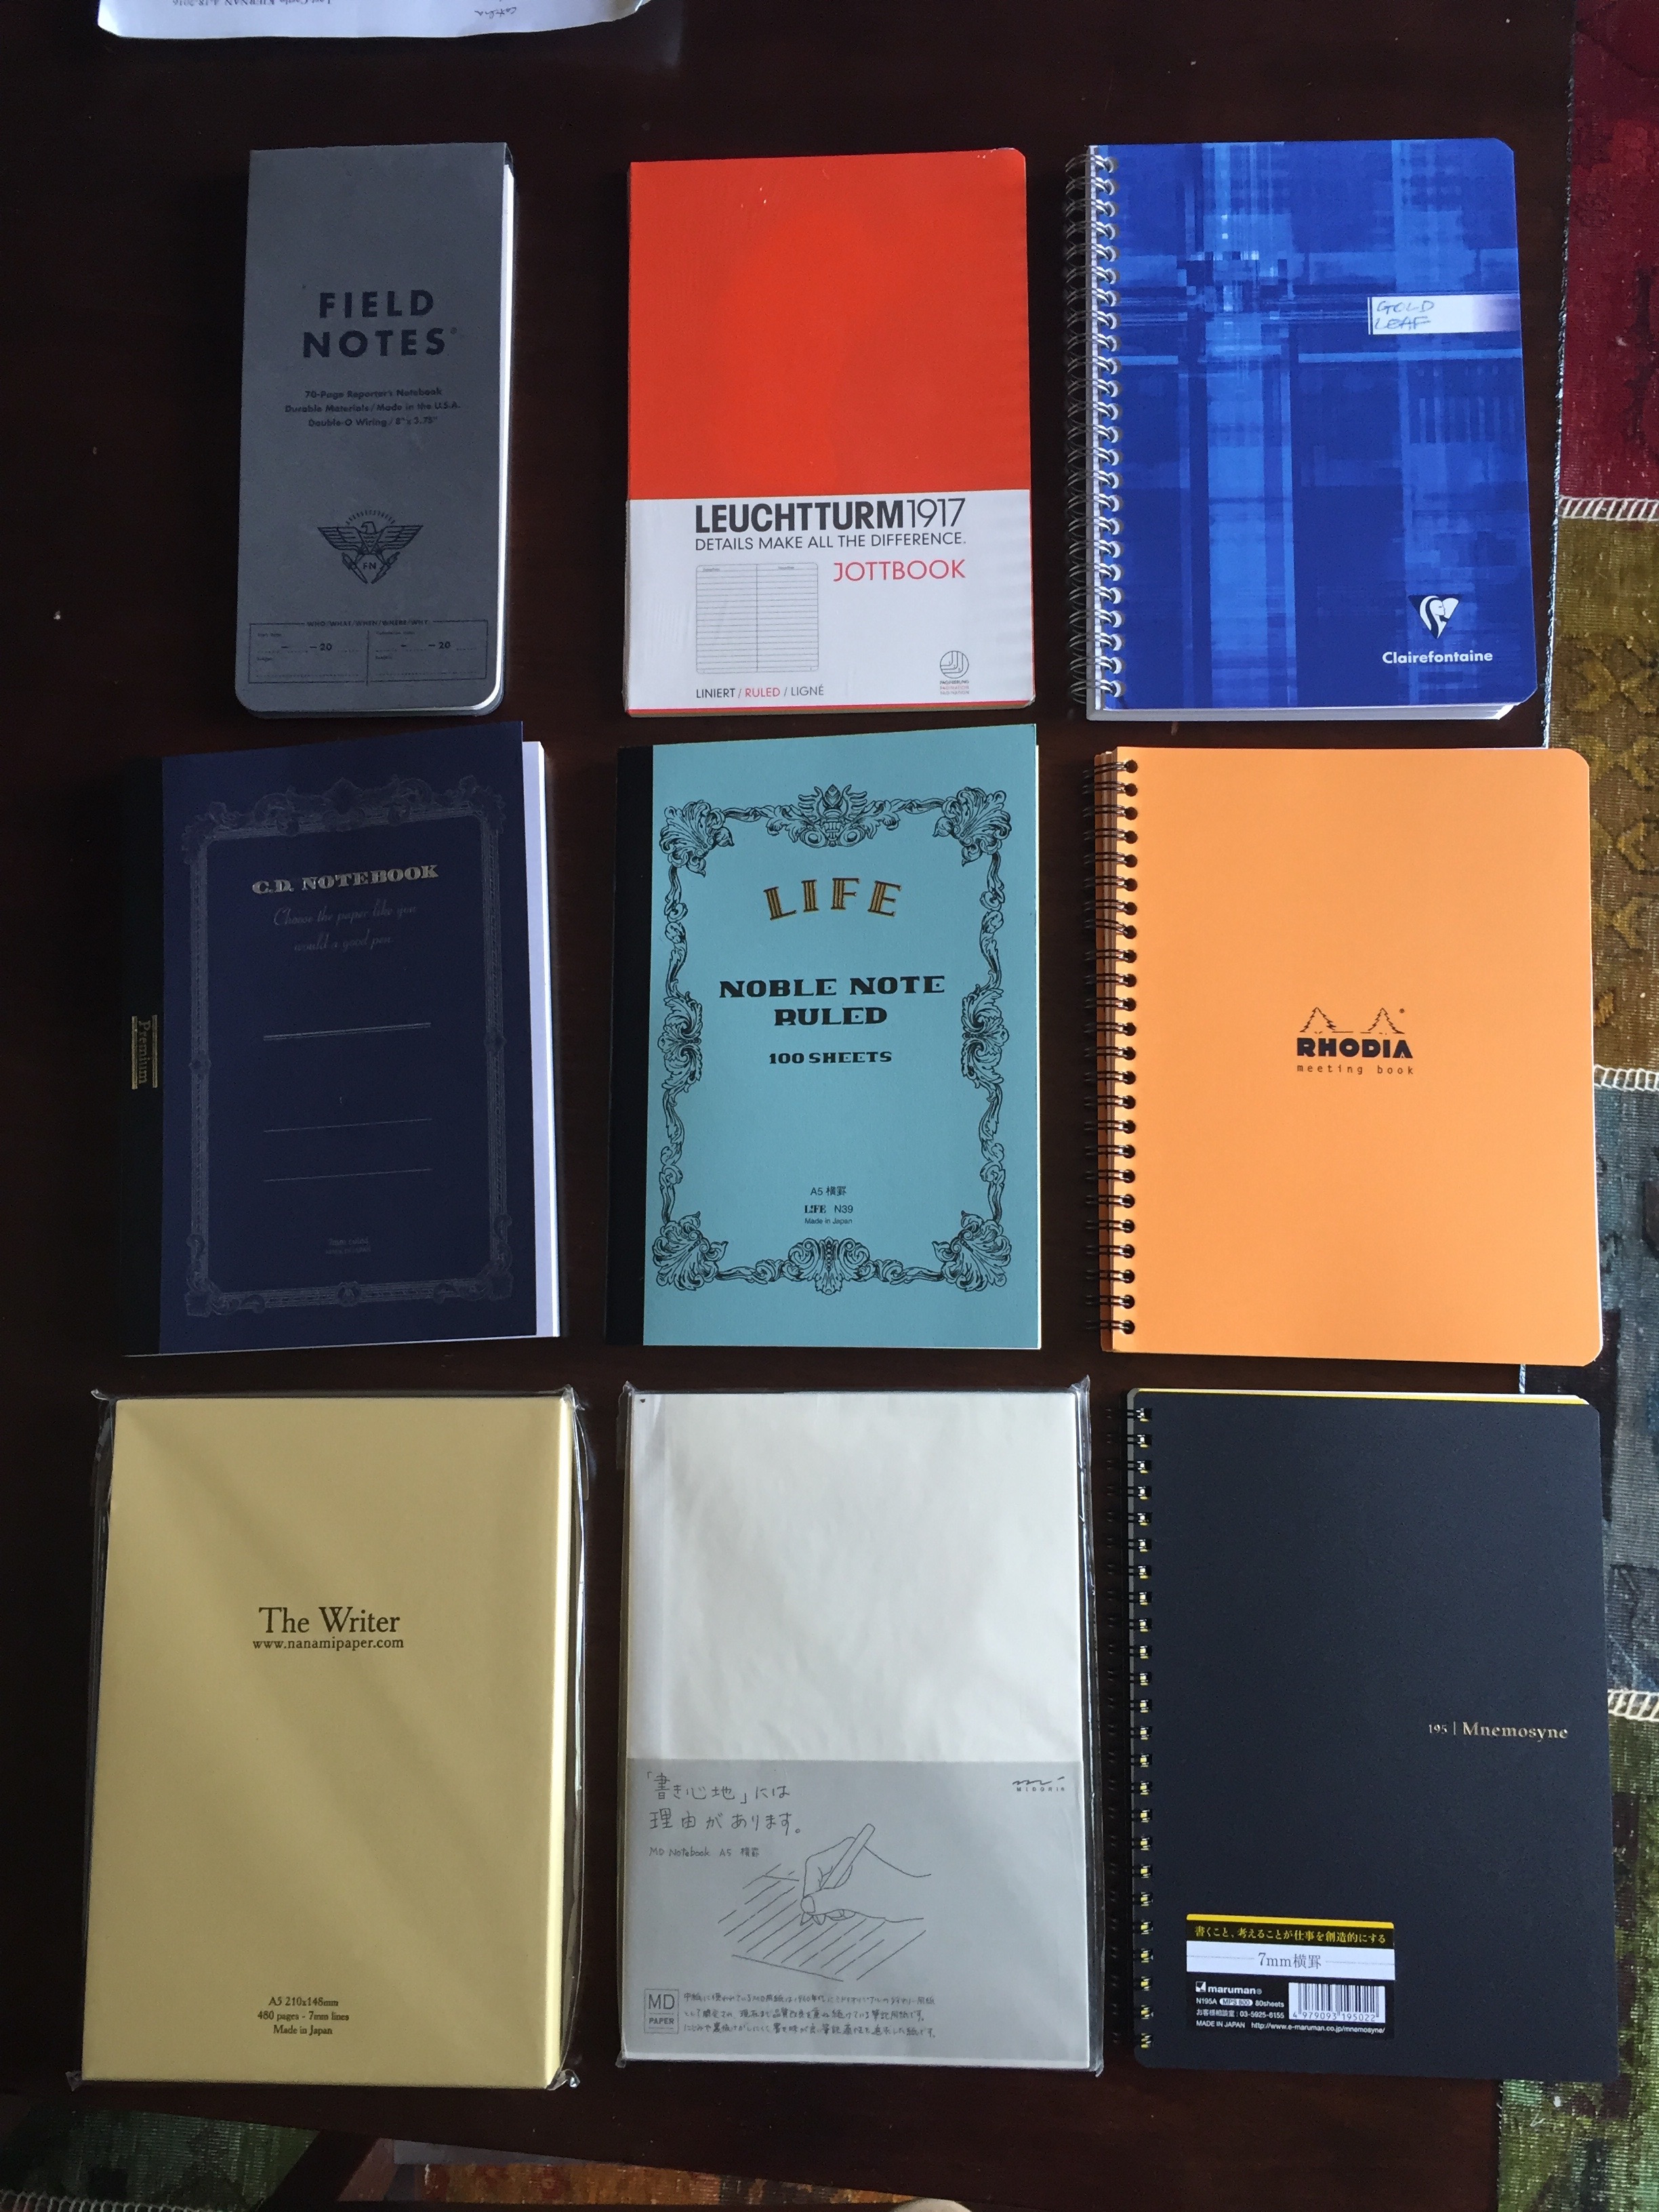 From top, left to right: Field Notes Byline Reporter's Notebook, Leuchtturm 1917 Jottbook, Clairefontaine, Apica CD Notebook, Life Notebook, Rhodia Meeting Book, Nanami Paper's A5 The Writer Notebook, Midori MD Notebook, and the Maruman Mnemosyne 196 A5 Notebook.